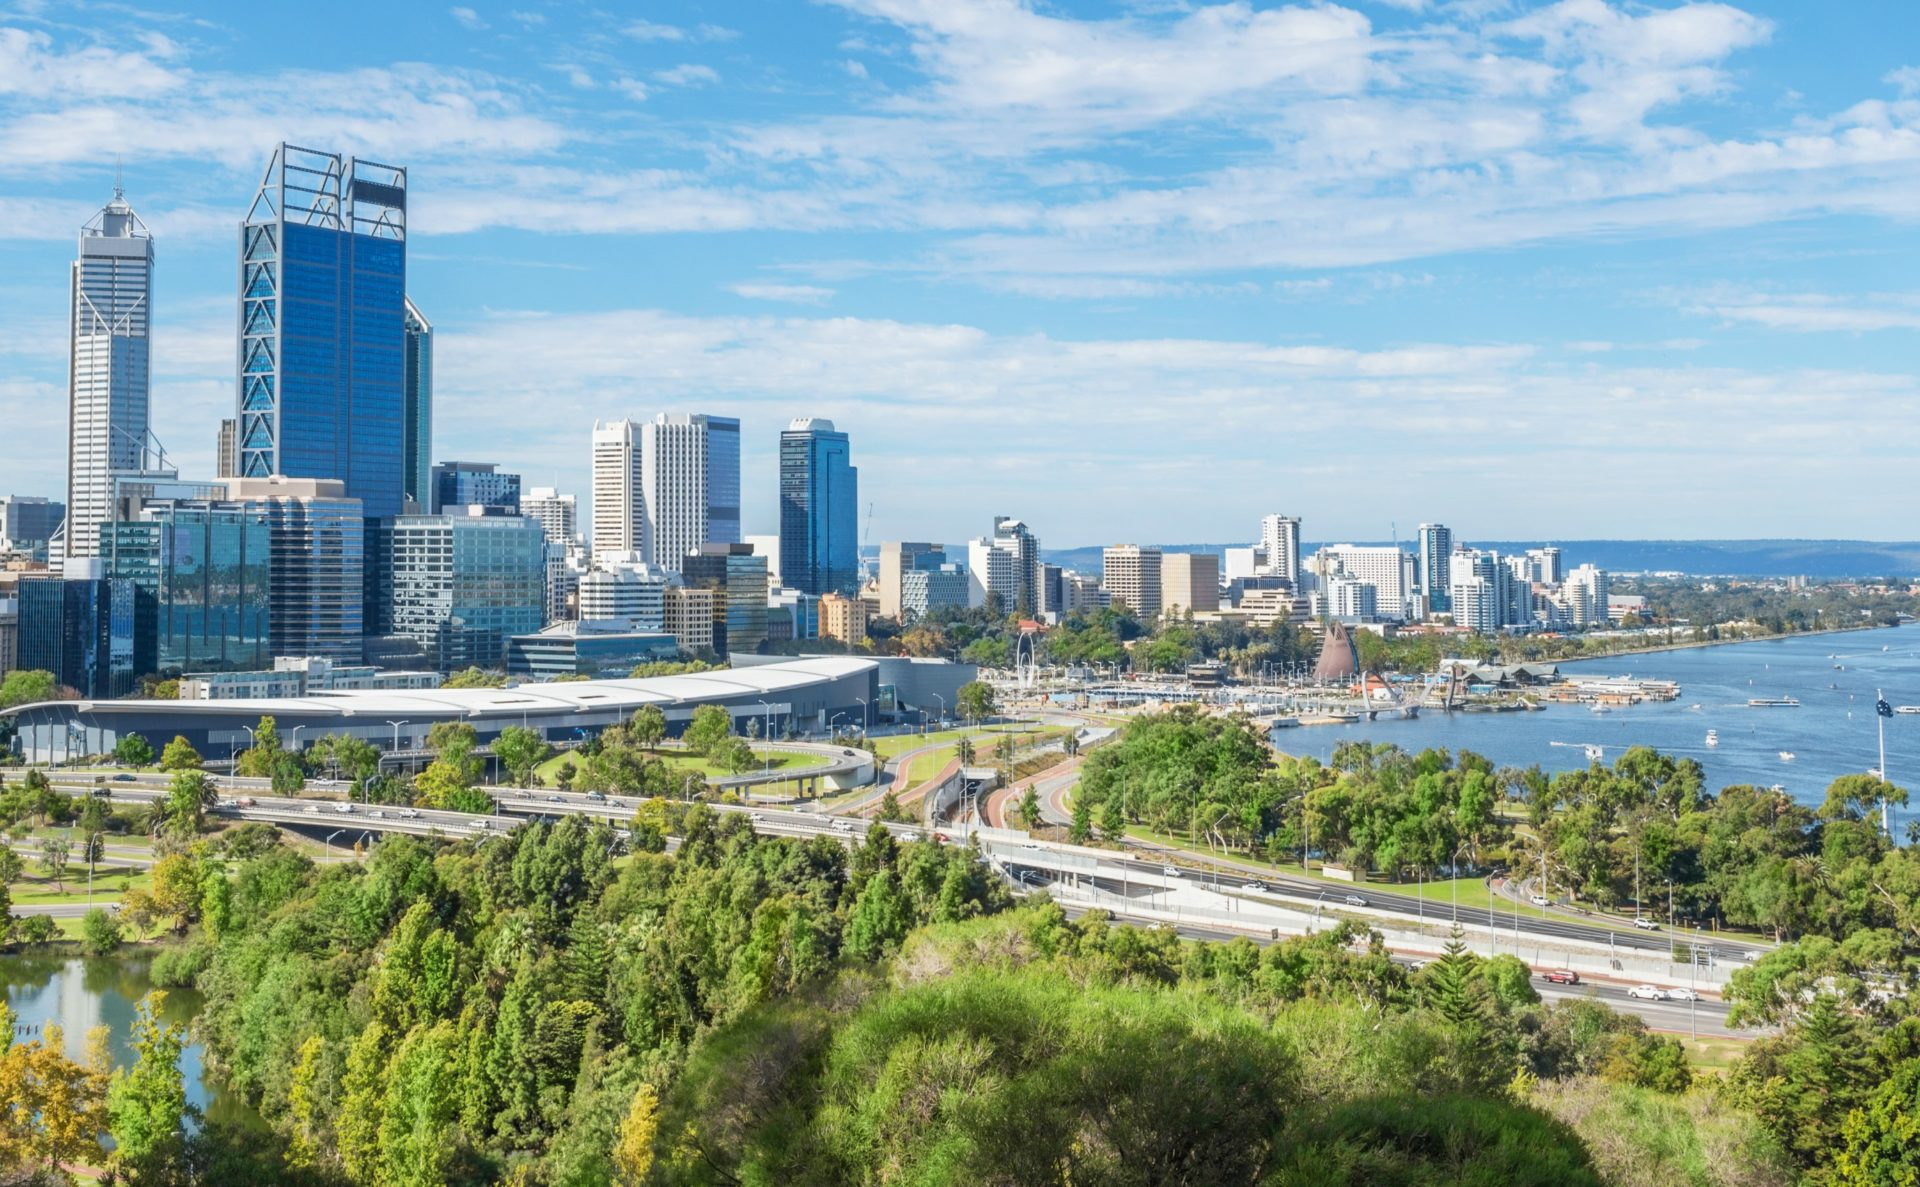 If you're going to purchase property in Australia, Perth's liveability could make it an attractive choice.